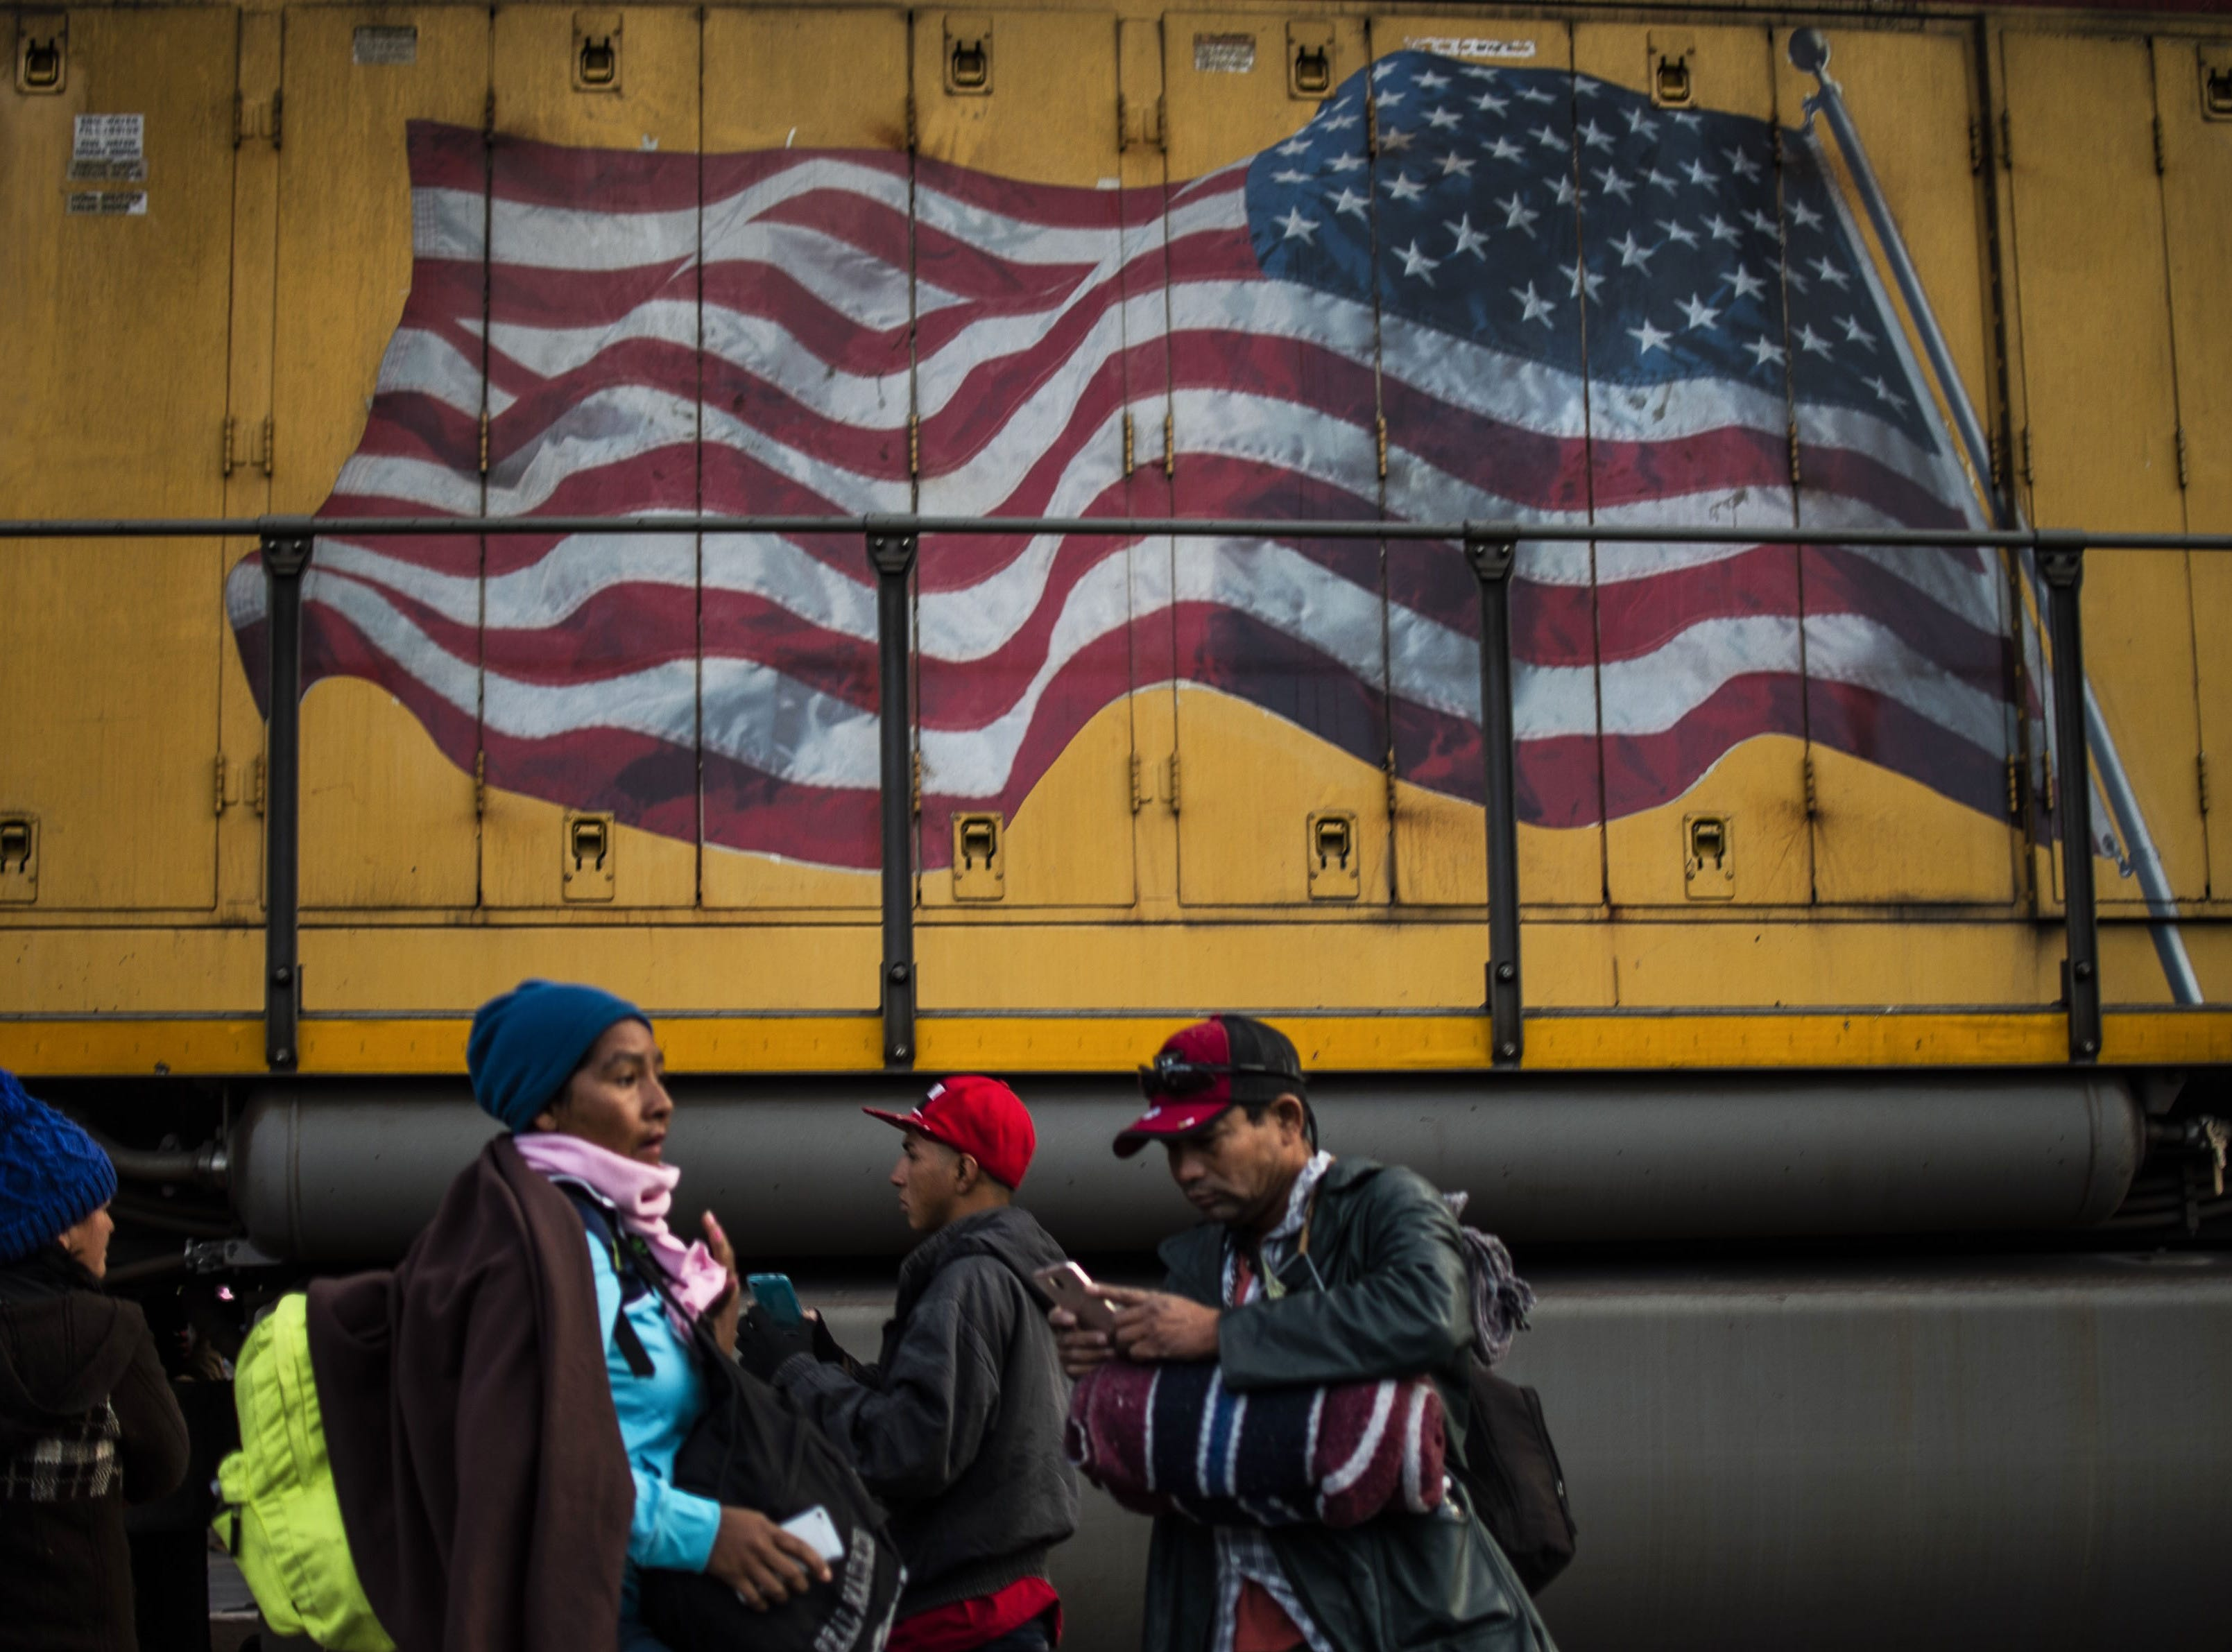 Central American migrants -mostly Hondurans- moving towards the United States in hopes of a better life, are pictured near a train painted with the US national flag, in the Mexican border city of Mexicali, Baja California state on their way to Tijuana, Mexico, on November 20, 2018. - Some 800 Central American migrants trekking across Mexico in a caravan aiming at the US, left Mexicali on Tuesday morning heading to Tijuana, where an increasingly reinforced border and growing hostility await them.